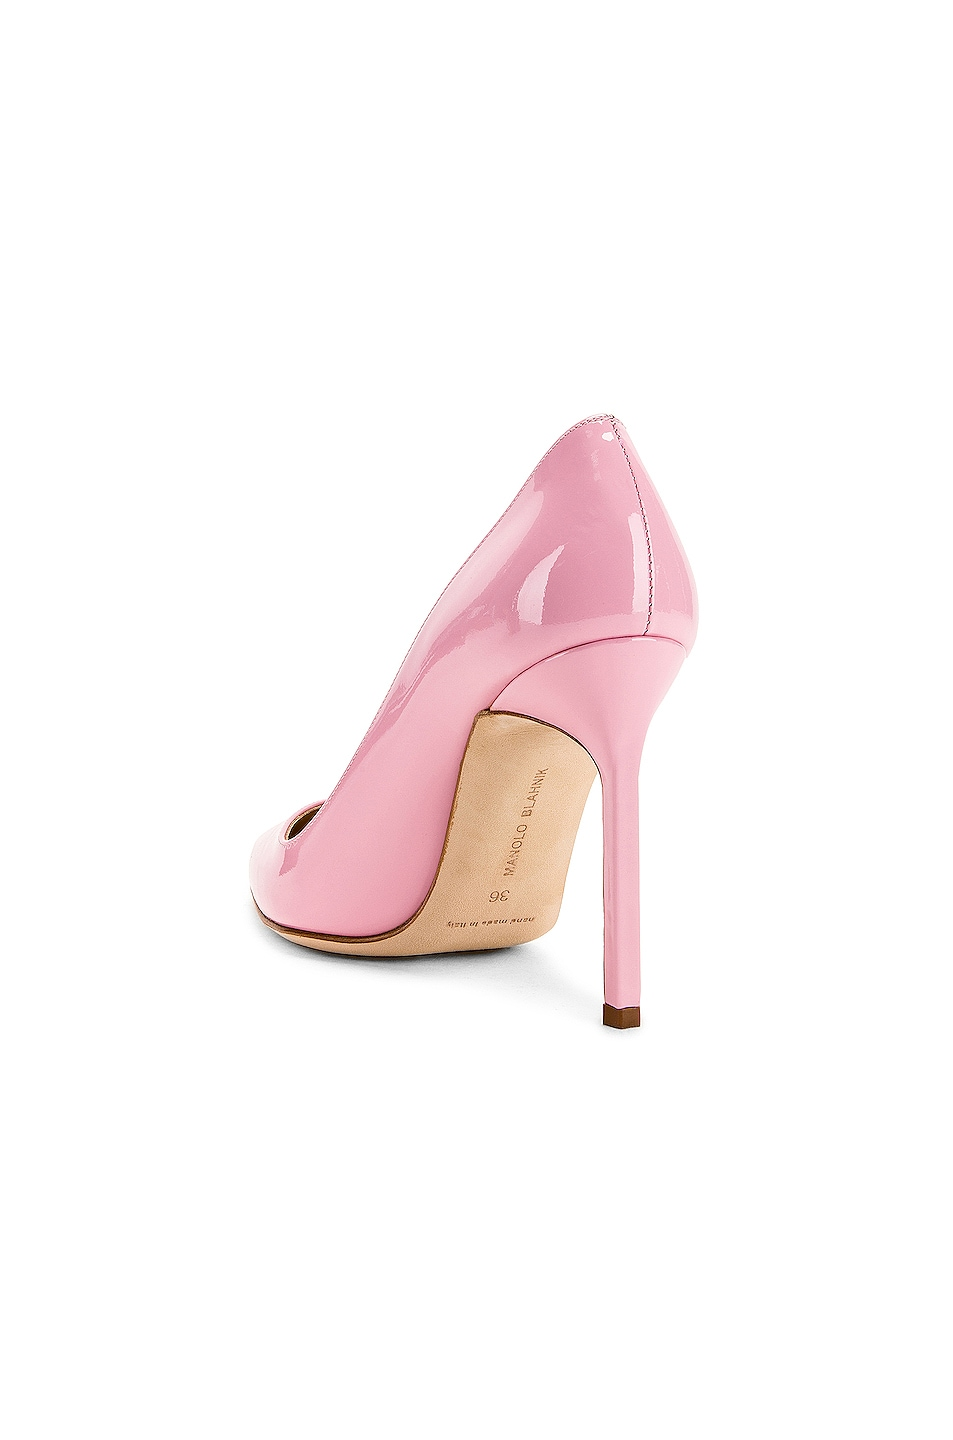 Image 3 of Manolo Blahnik BB Pump in Baby Pink Patent